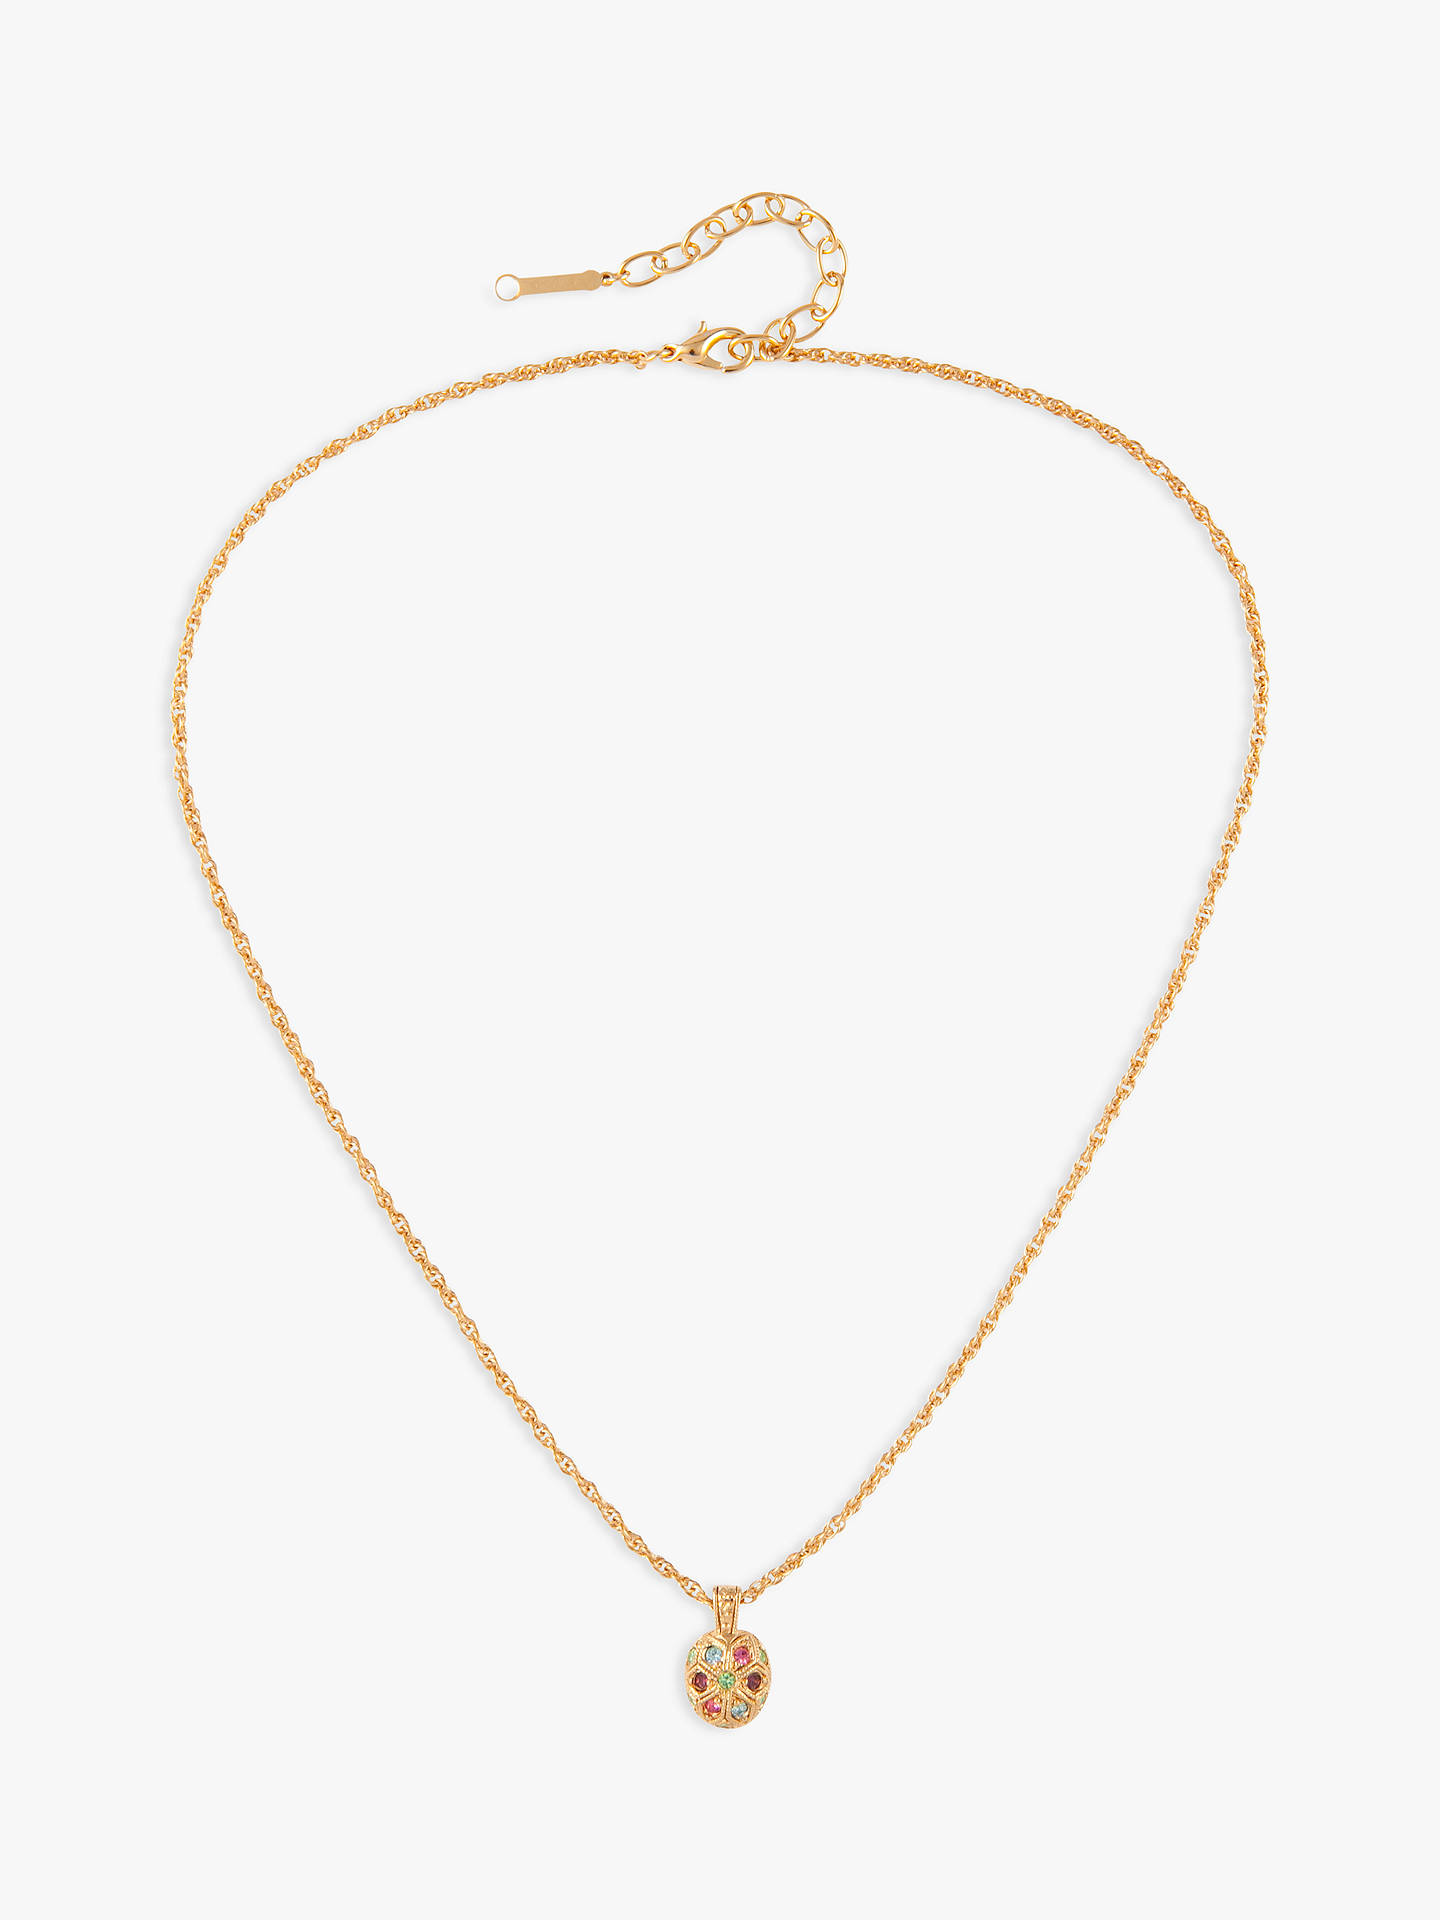 Buy Susan Caplan Vintage D'Orlan 22ct Gold Plated Swarovski Crystal Oval Pendant Necklace, Gold/Multi Online at johnlewis.com